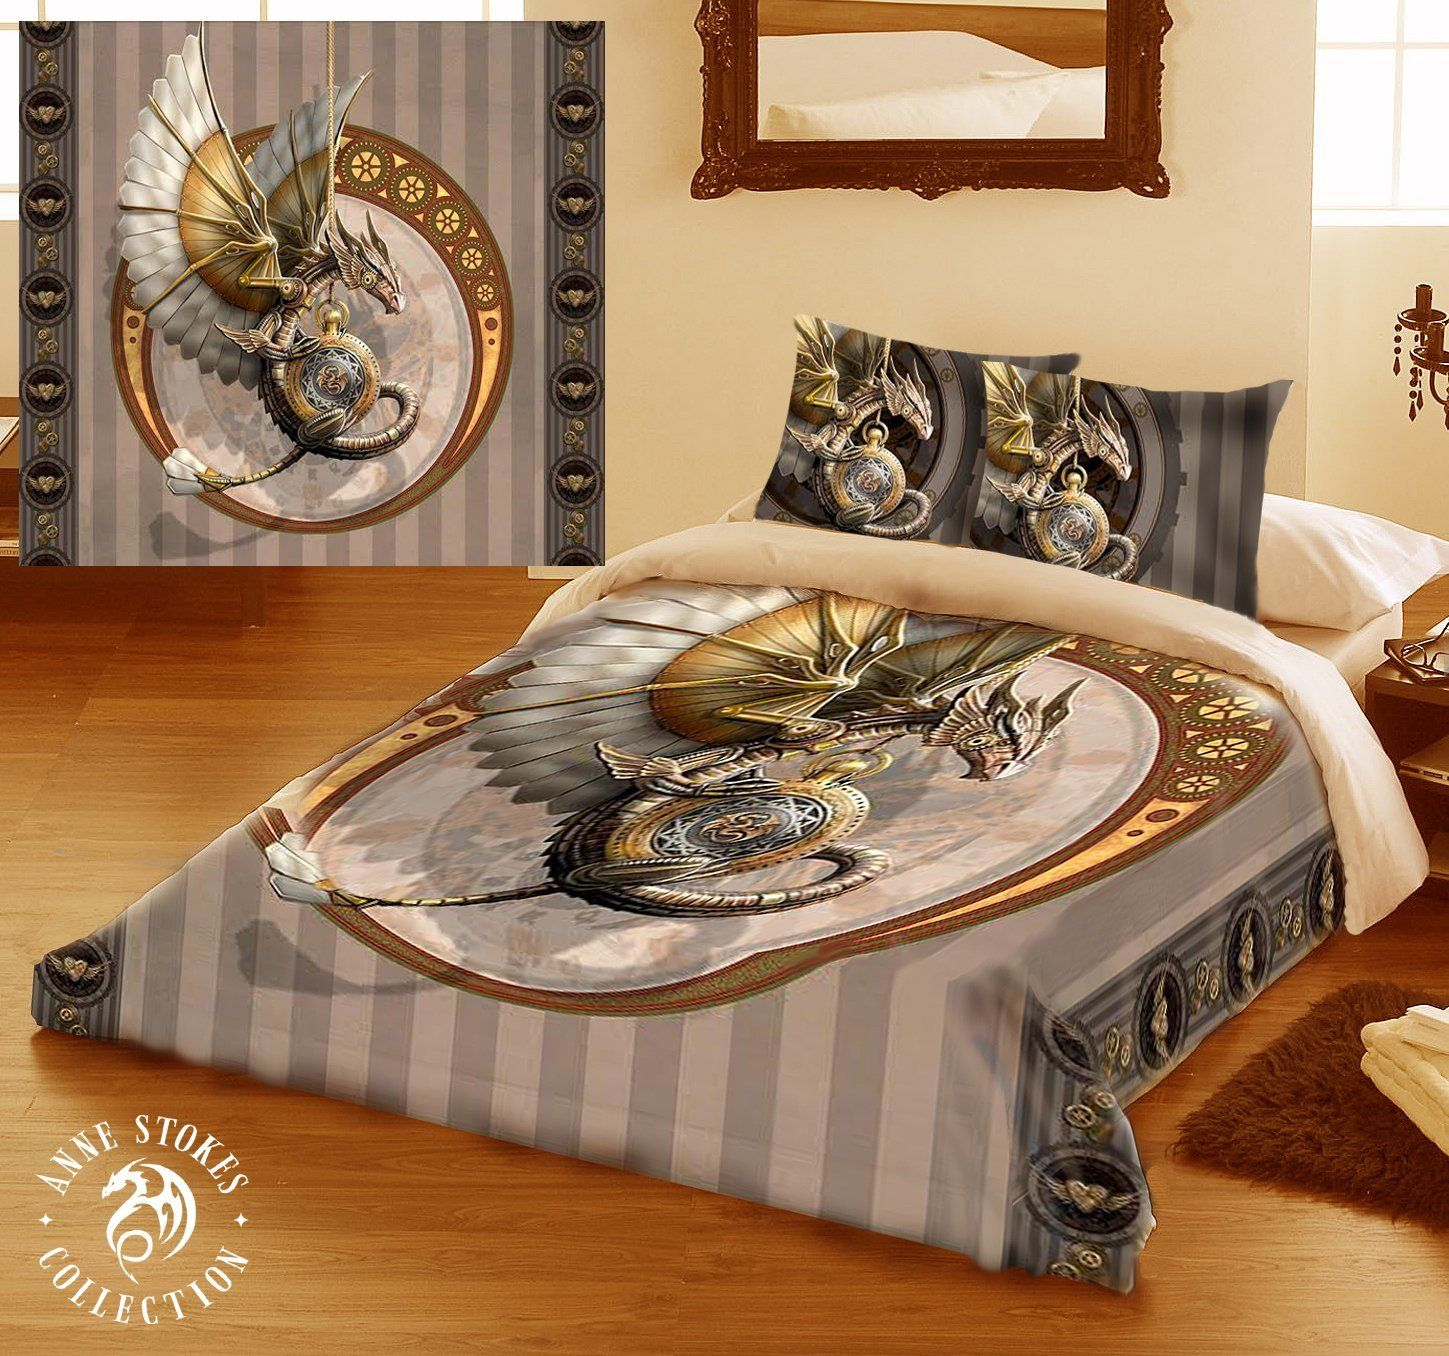 Steampunk Dragon Bedding Queensize | Bedding sets, Pillow cases ...